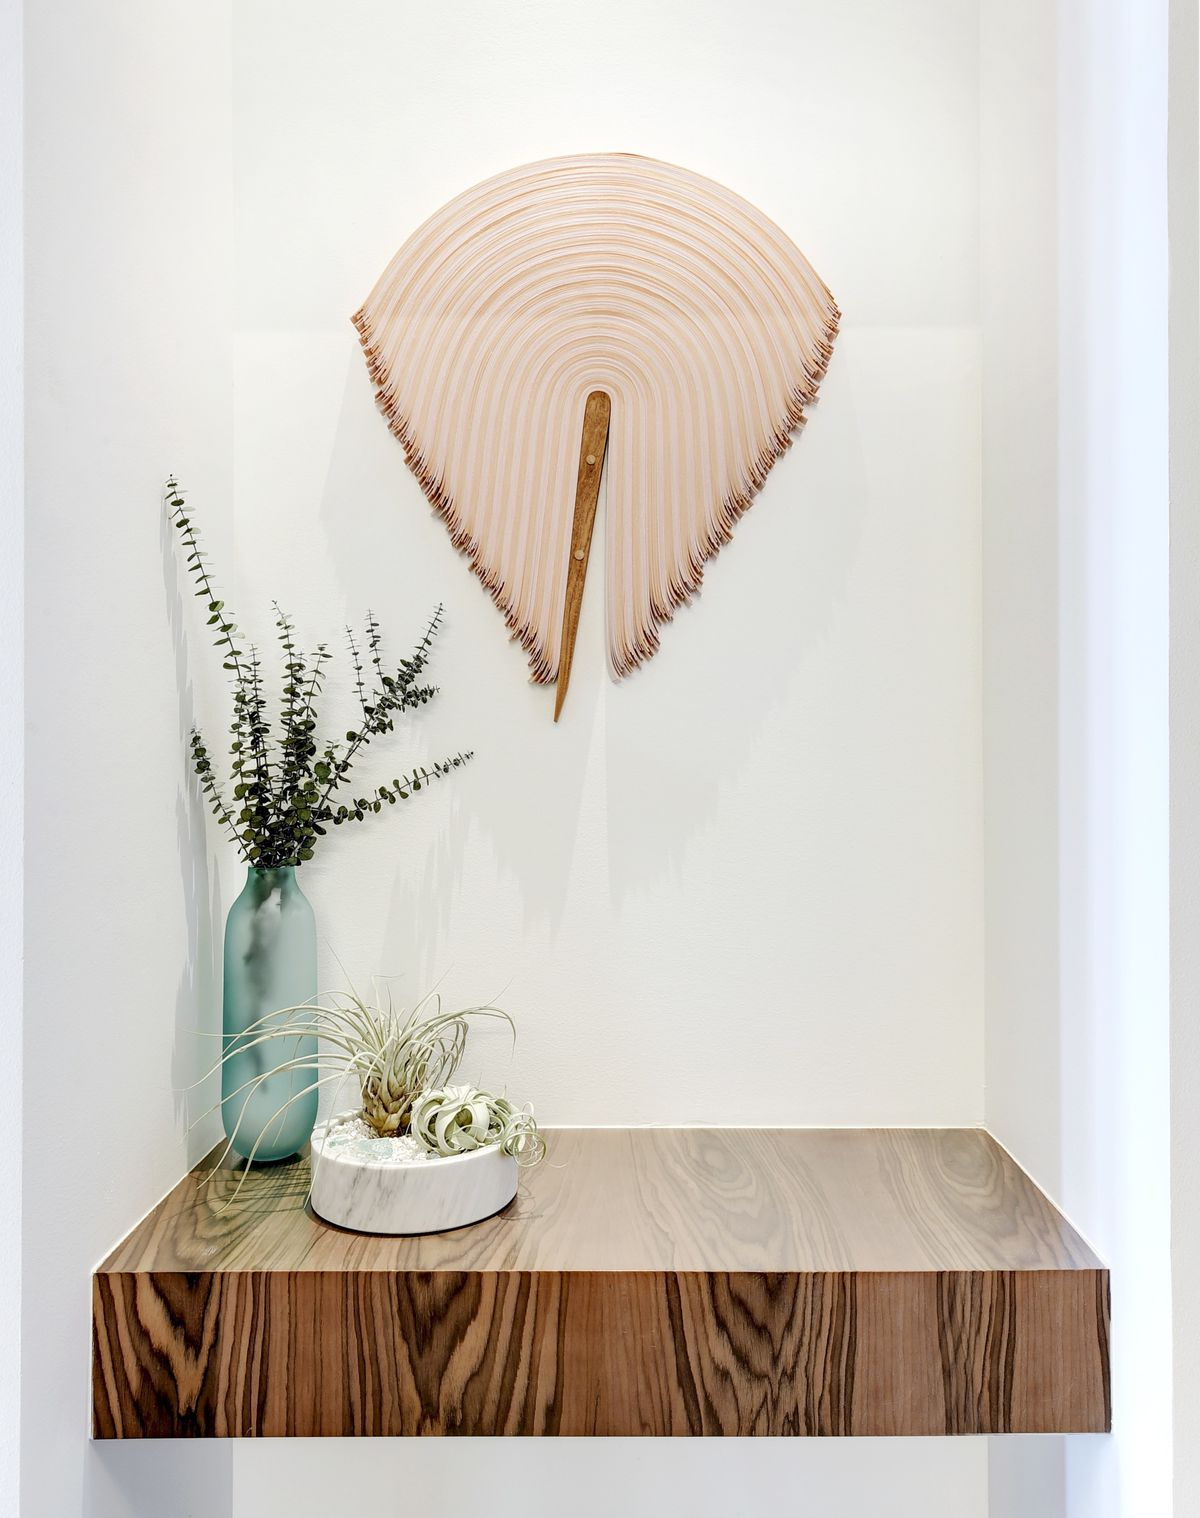 A pink and brown fabric sculpture curved in a fan shape in a niche above a small wooden table.